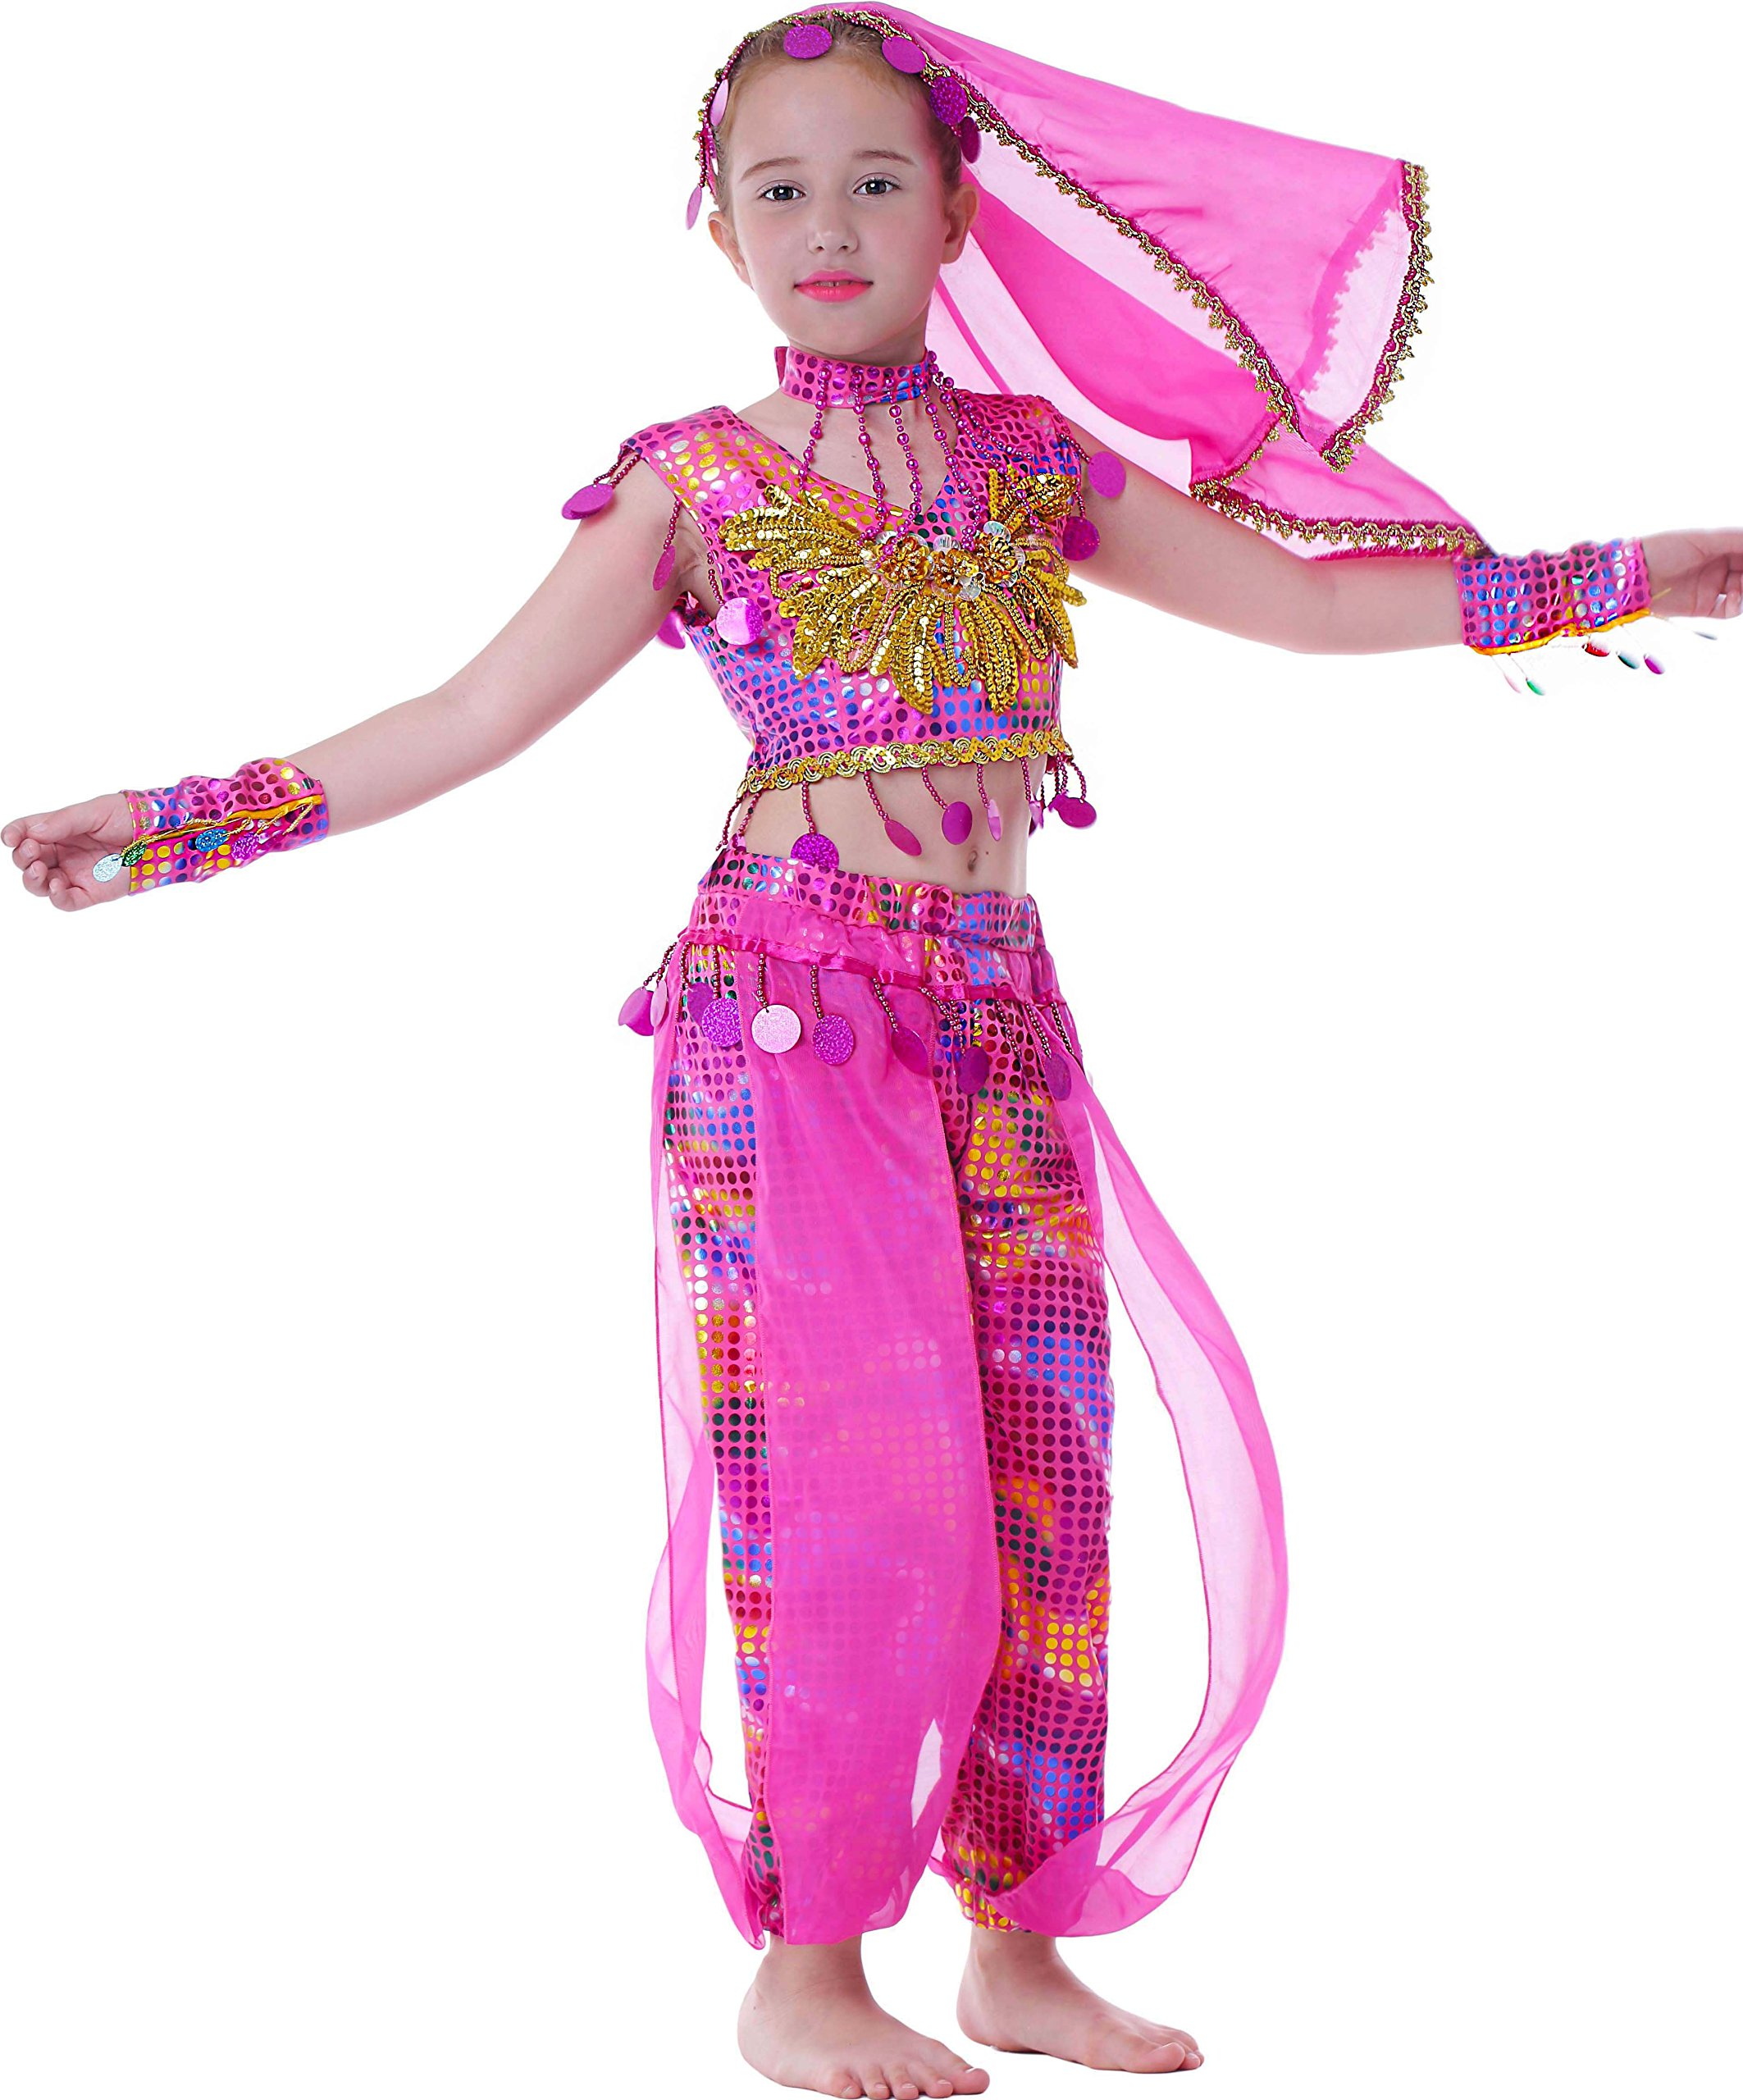 231cb6454a1f Galleon - Seawhisper Kid's Performance India Costume School Show Outfit  Girl Halloween Costumes